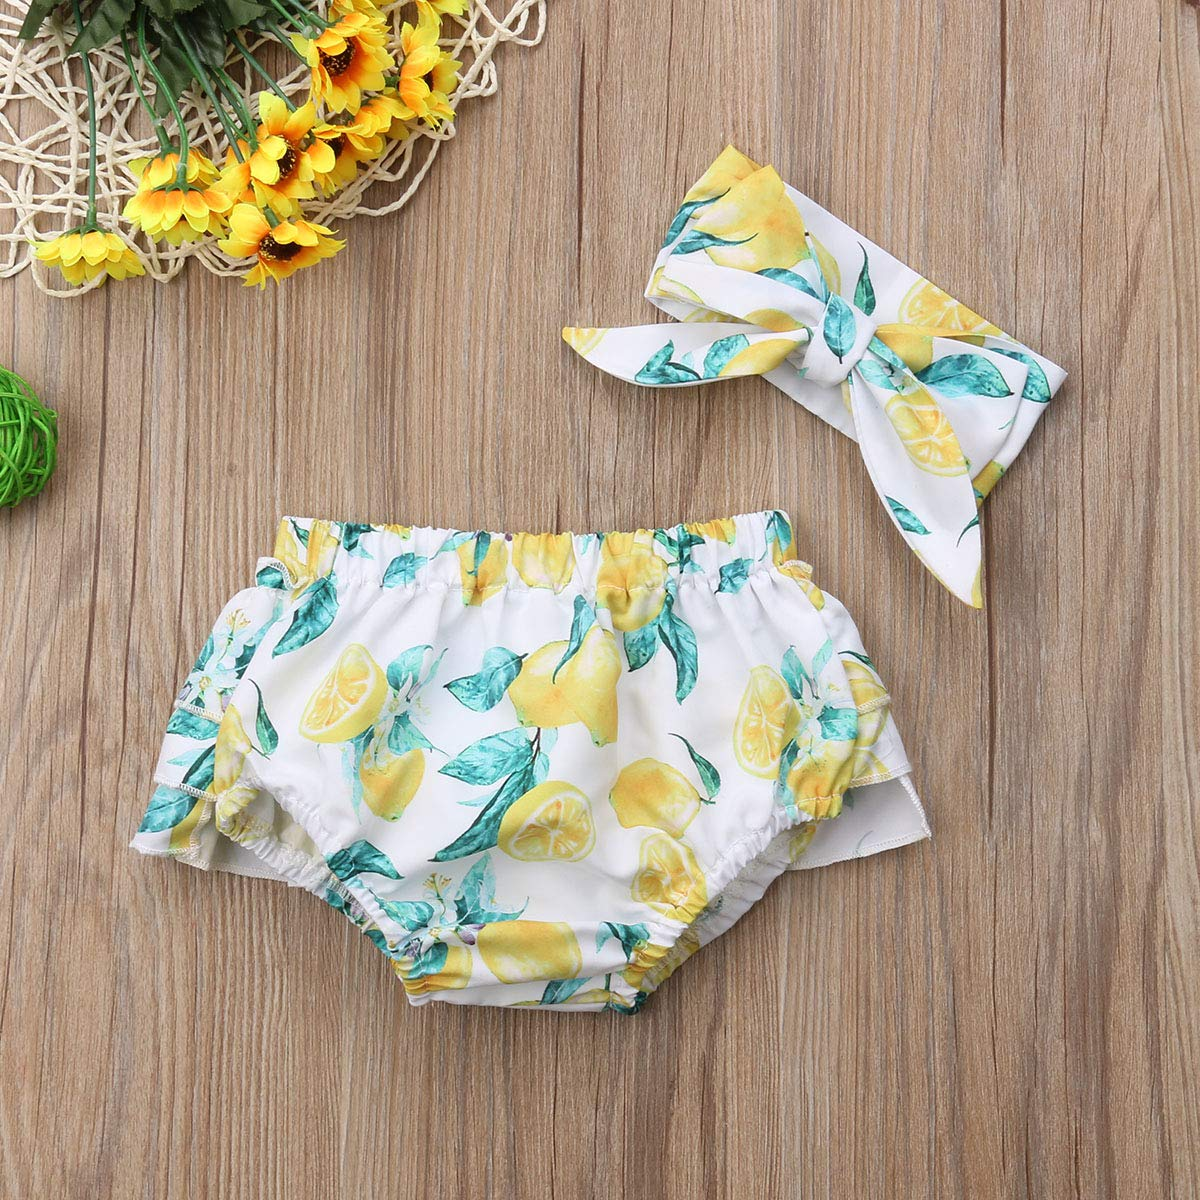 Newborn Baby Girls Photography Prop Floral Ruffle Layers Pleated Skirt Headband Outfits